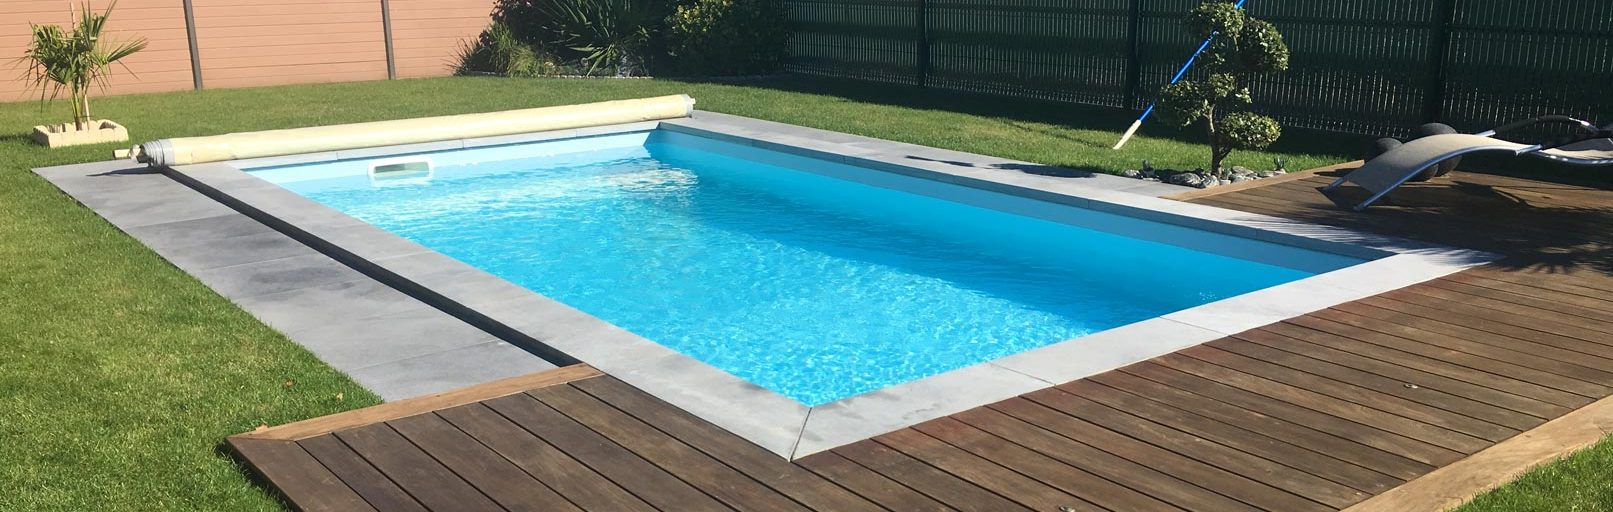 Couverture barres de s curit pour piscine disponible au for Fournisseur piscine